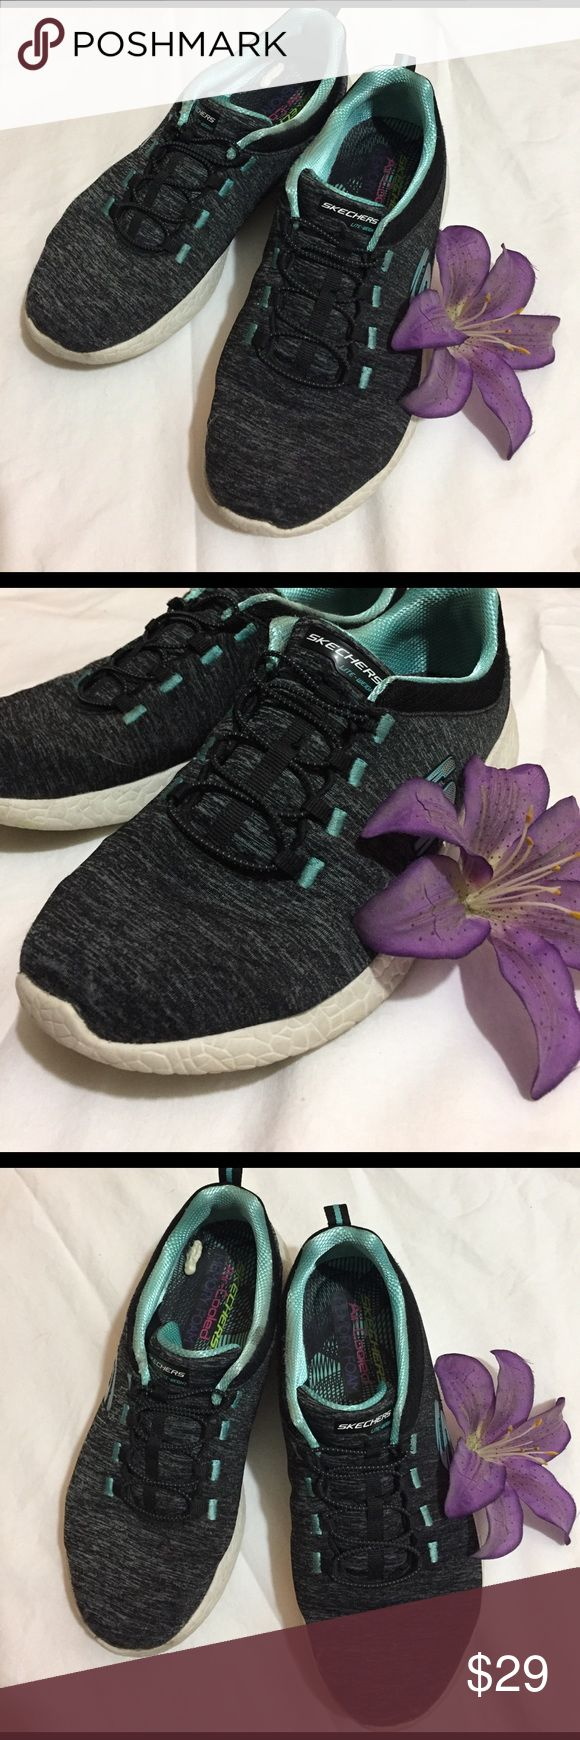 Skechers air-cooled memory foam sneakers Black and turquoise. Some wear on soles ad pictured. Otherwise very good condition. Skechers Shoes Athletic Shoes